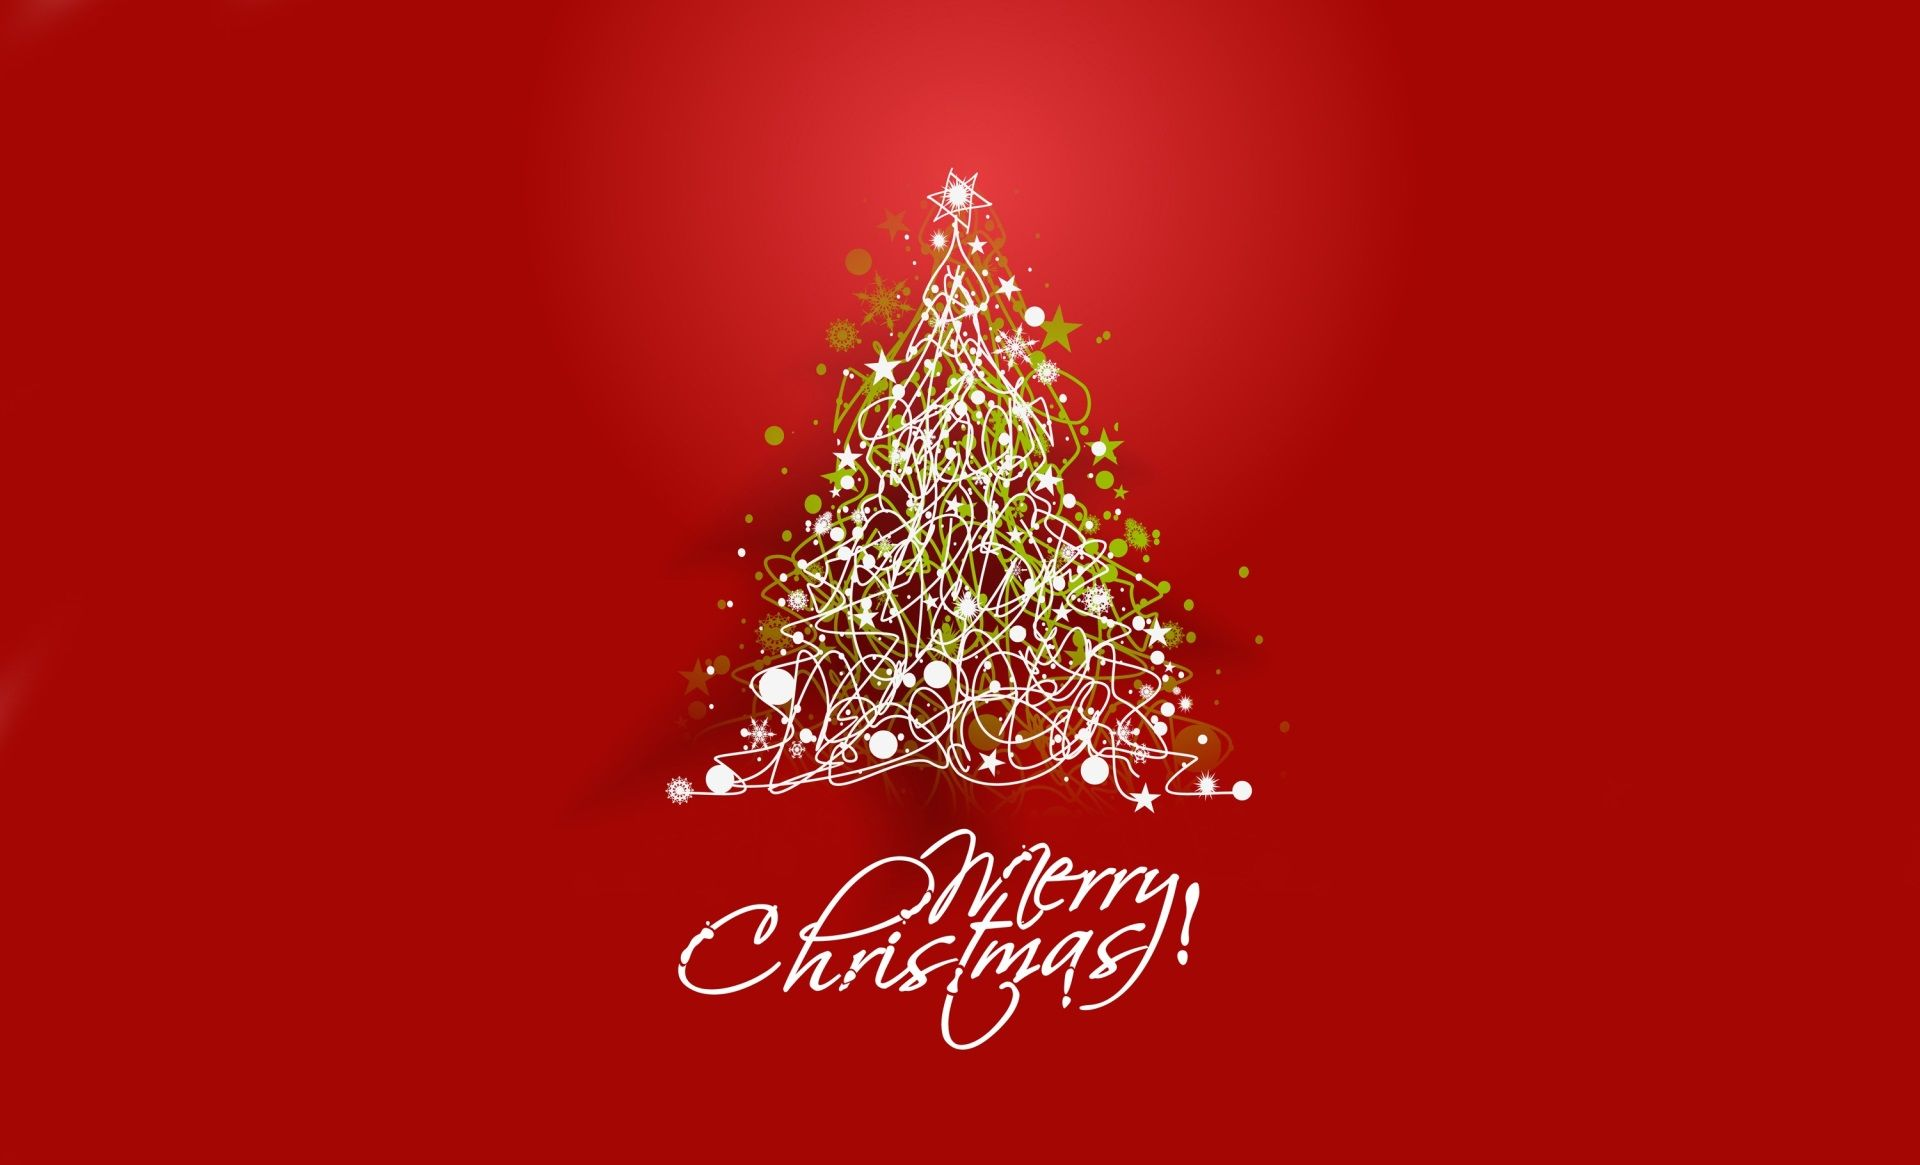 1920x1165 merry christmas hd background wallpaper free download